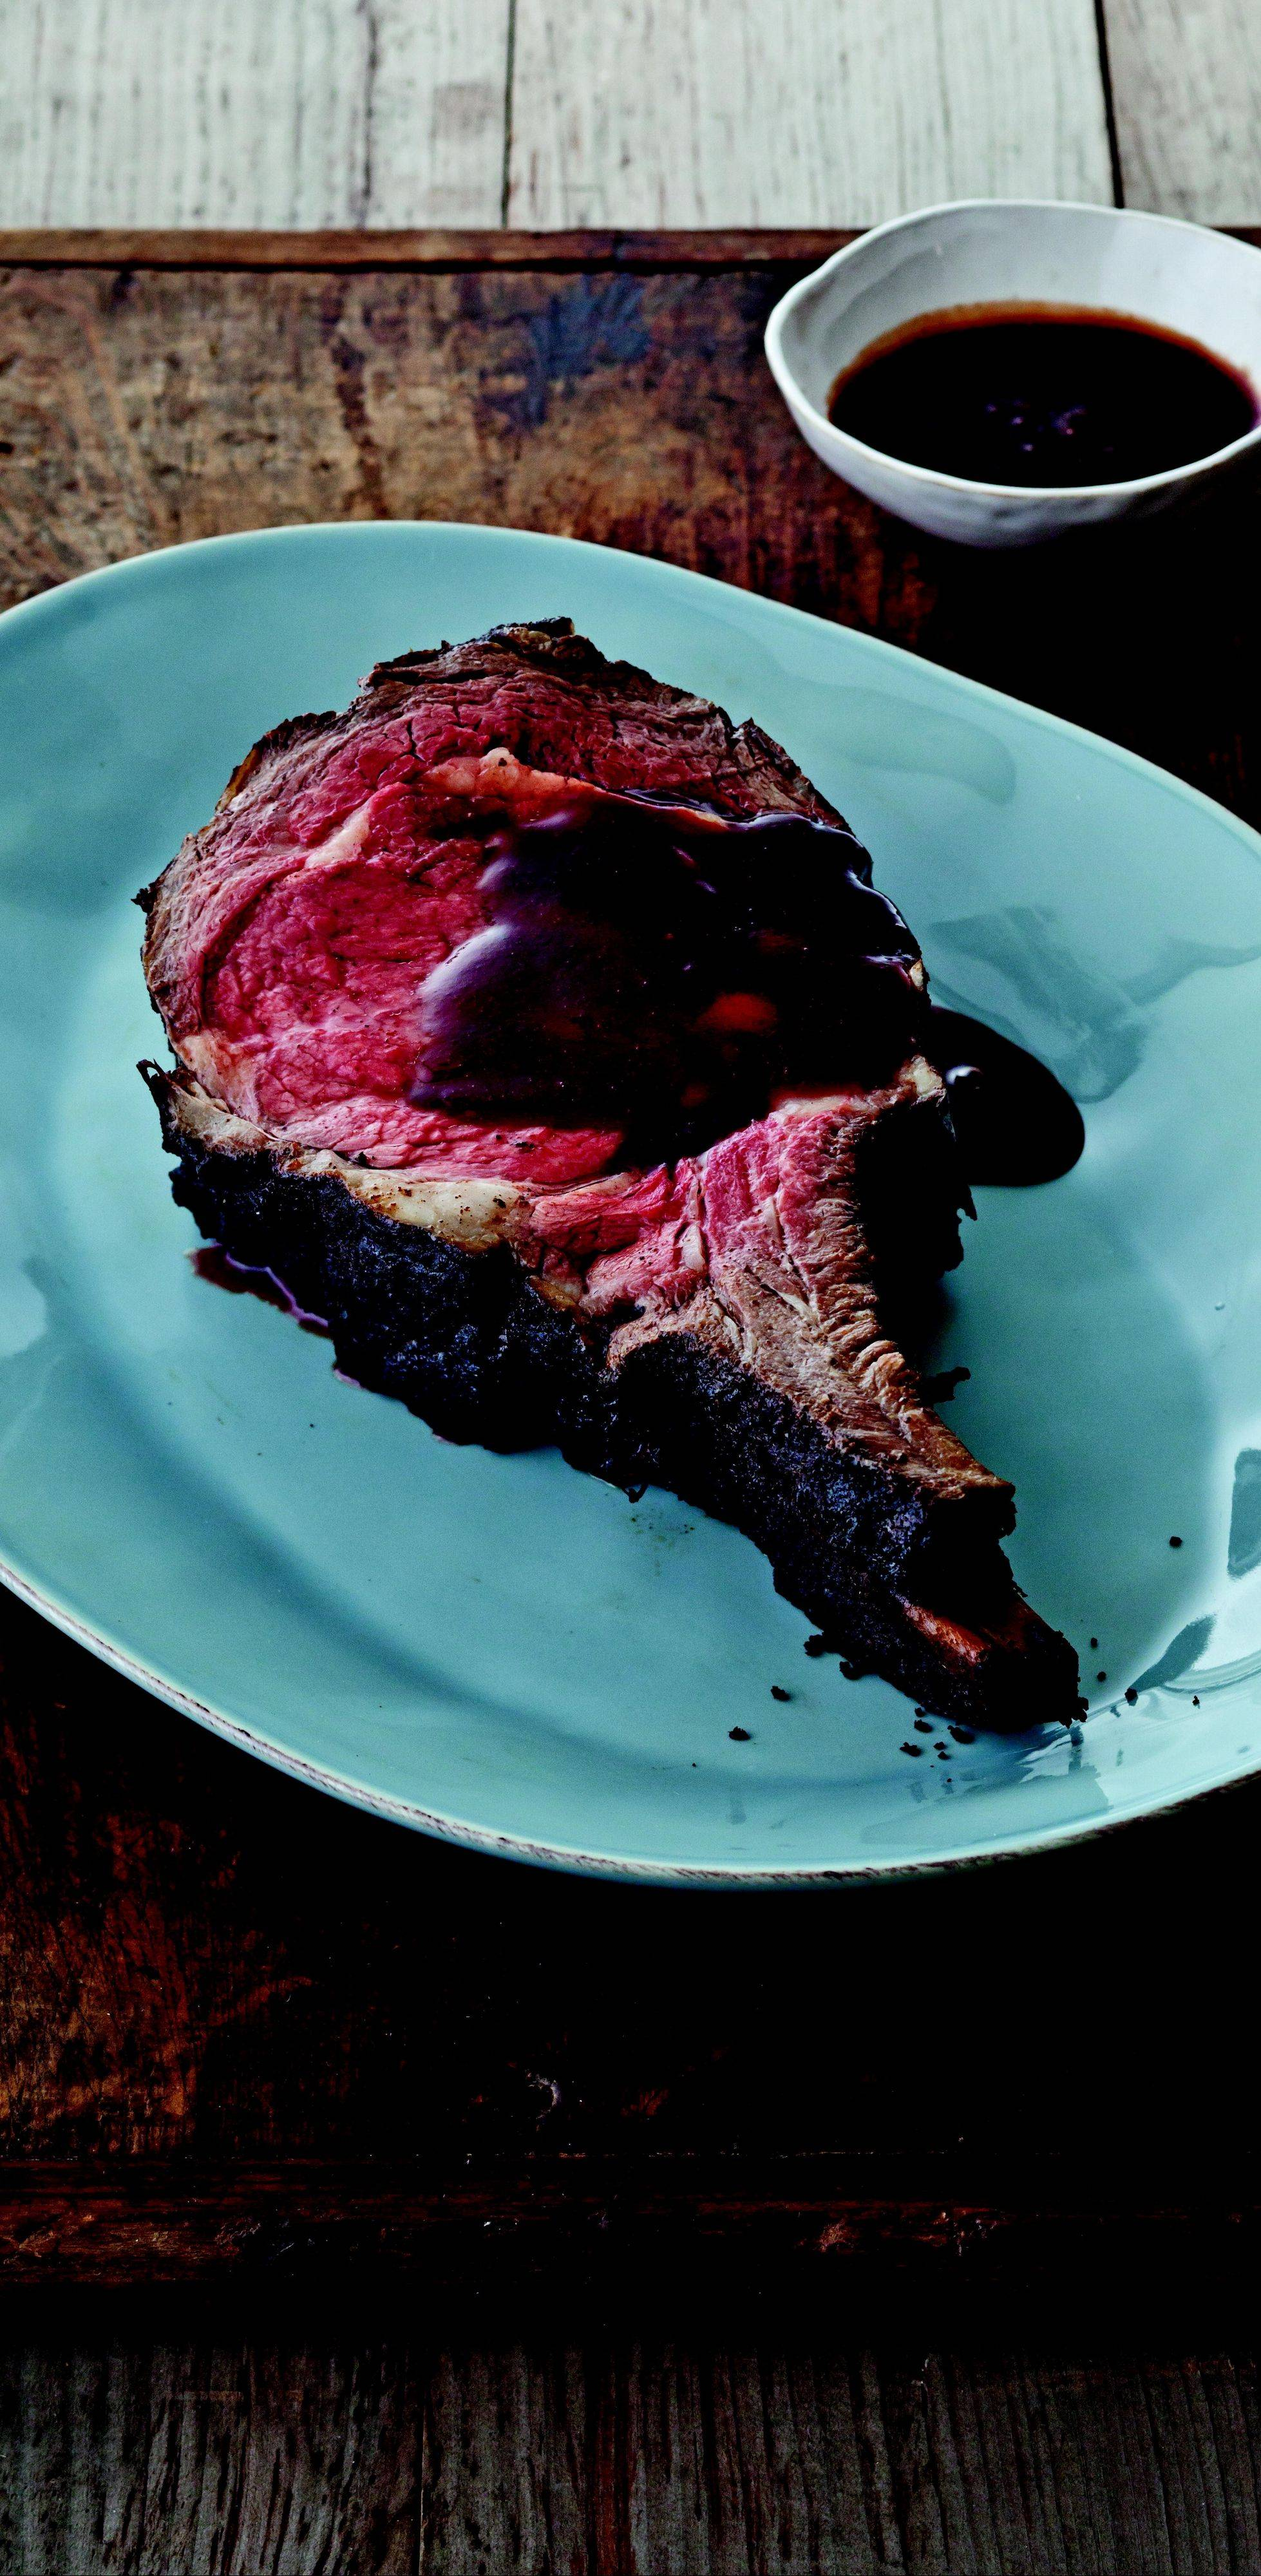 Patience pays tasty dividends with a tender slab of Smoked Prime Rib with Red Wine Steak Sauce.